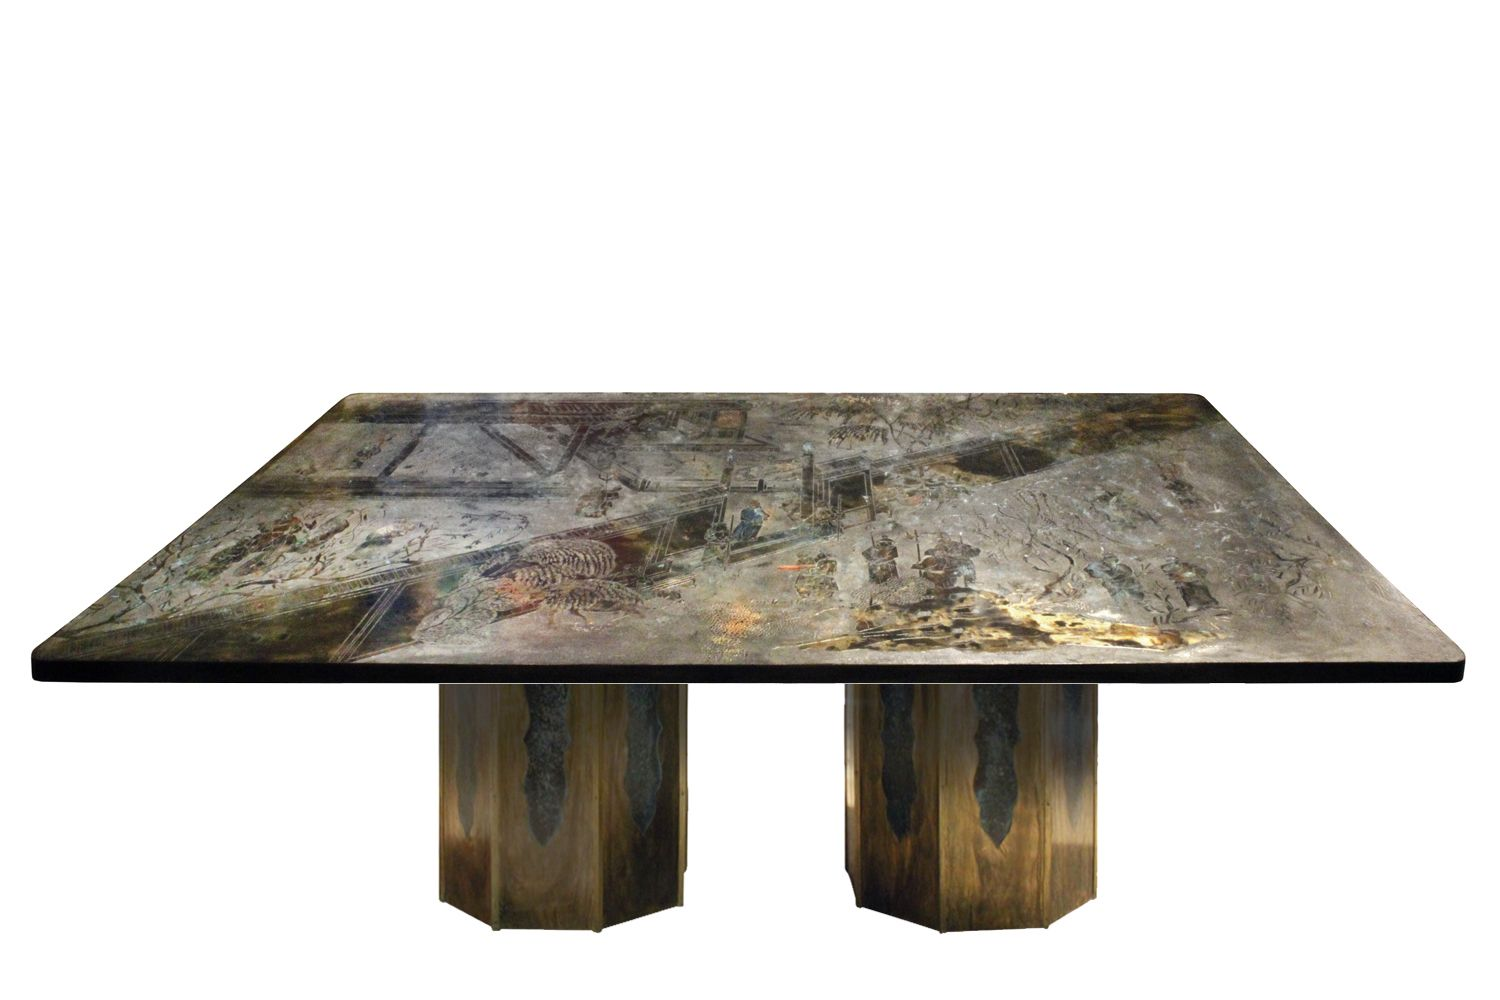 Pin On Furniture Table Design